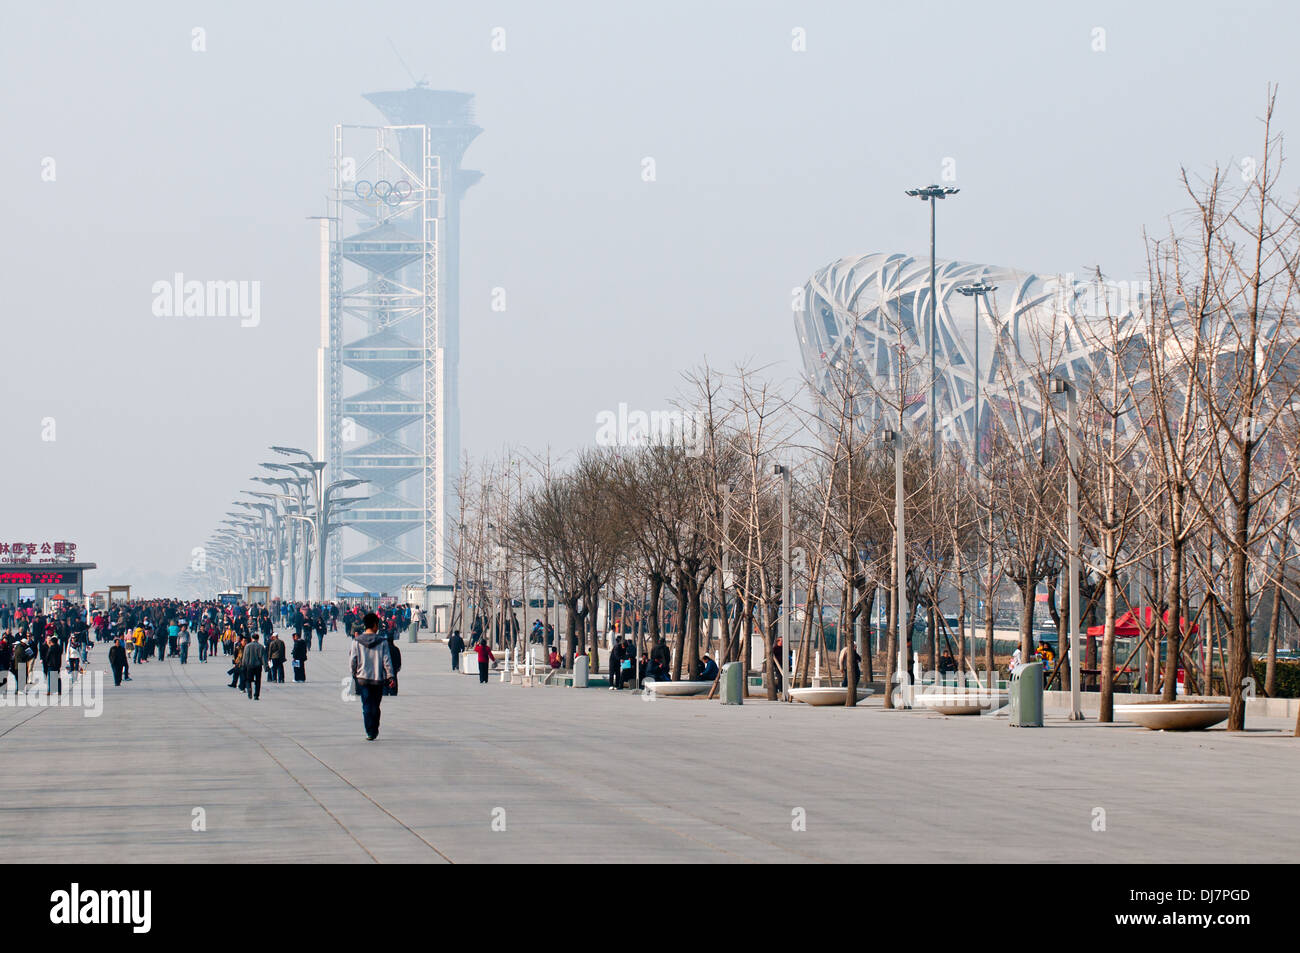 in-olympic-green-olympic-park-in-beijing